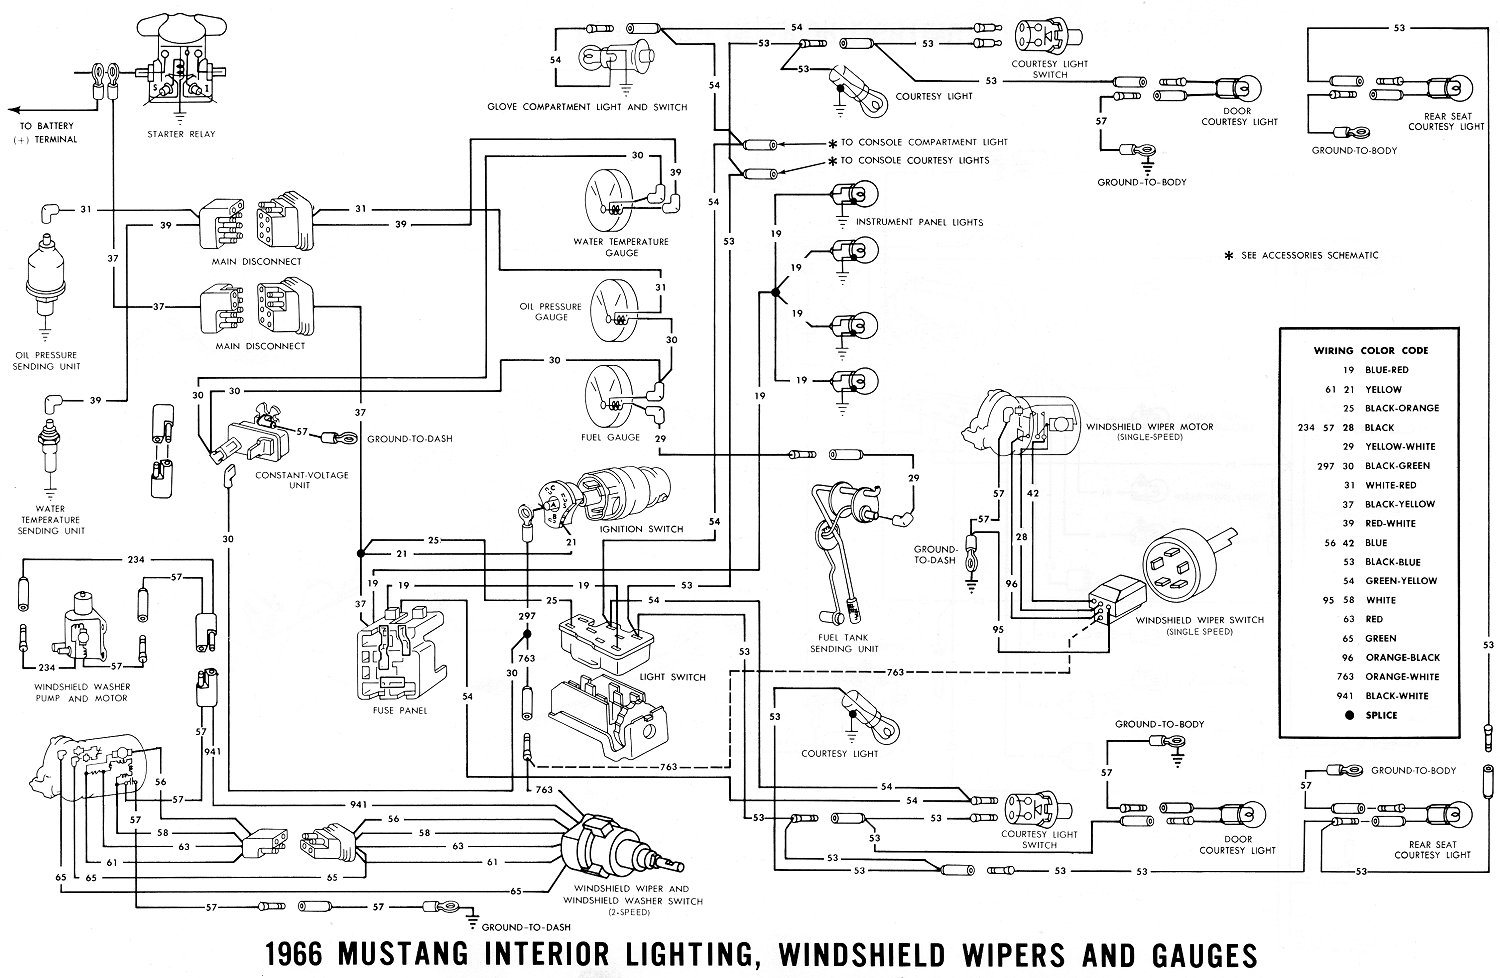 66inter1 vintage mustang wiring diagrams 1966 mustang alternator wiring diagram at mifinder.co